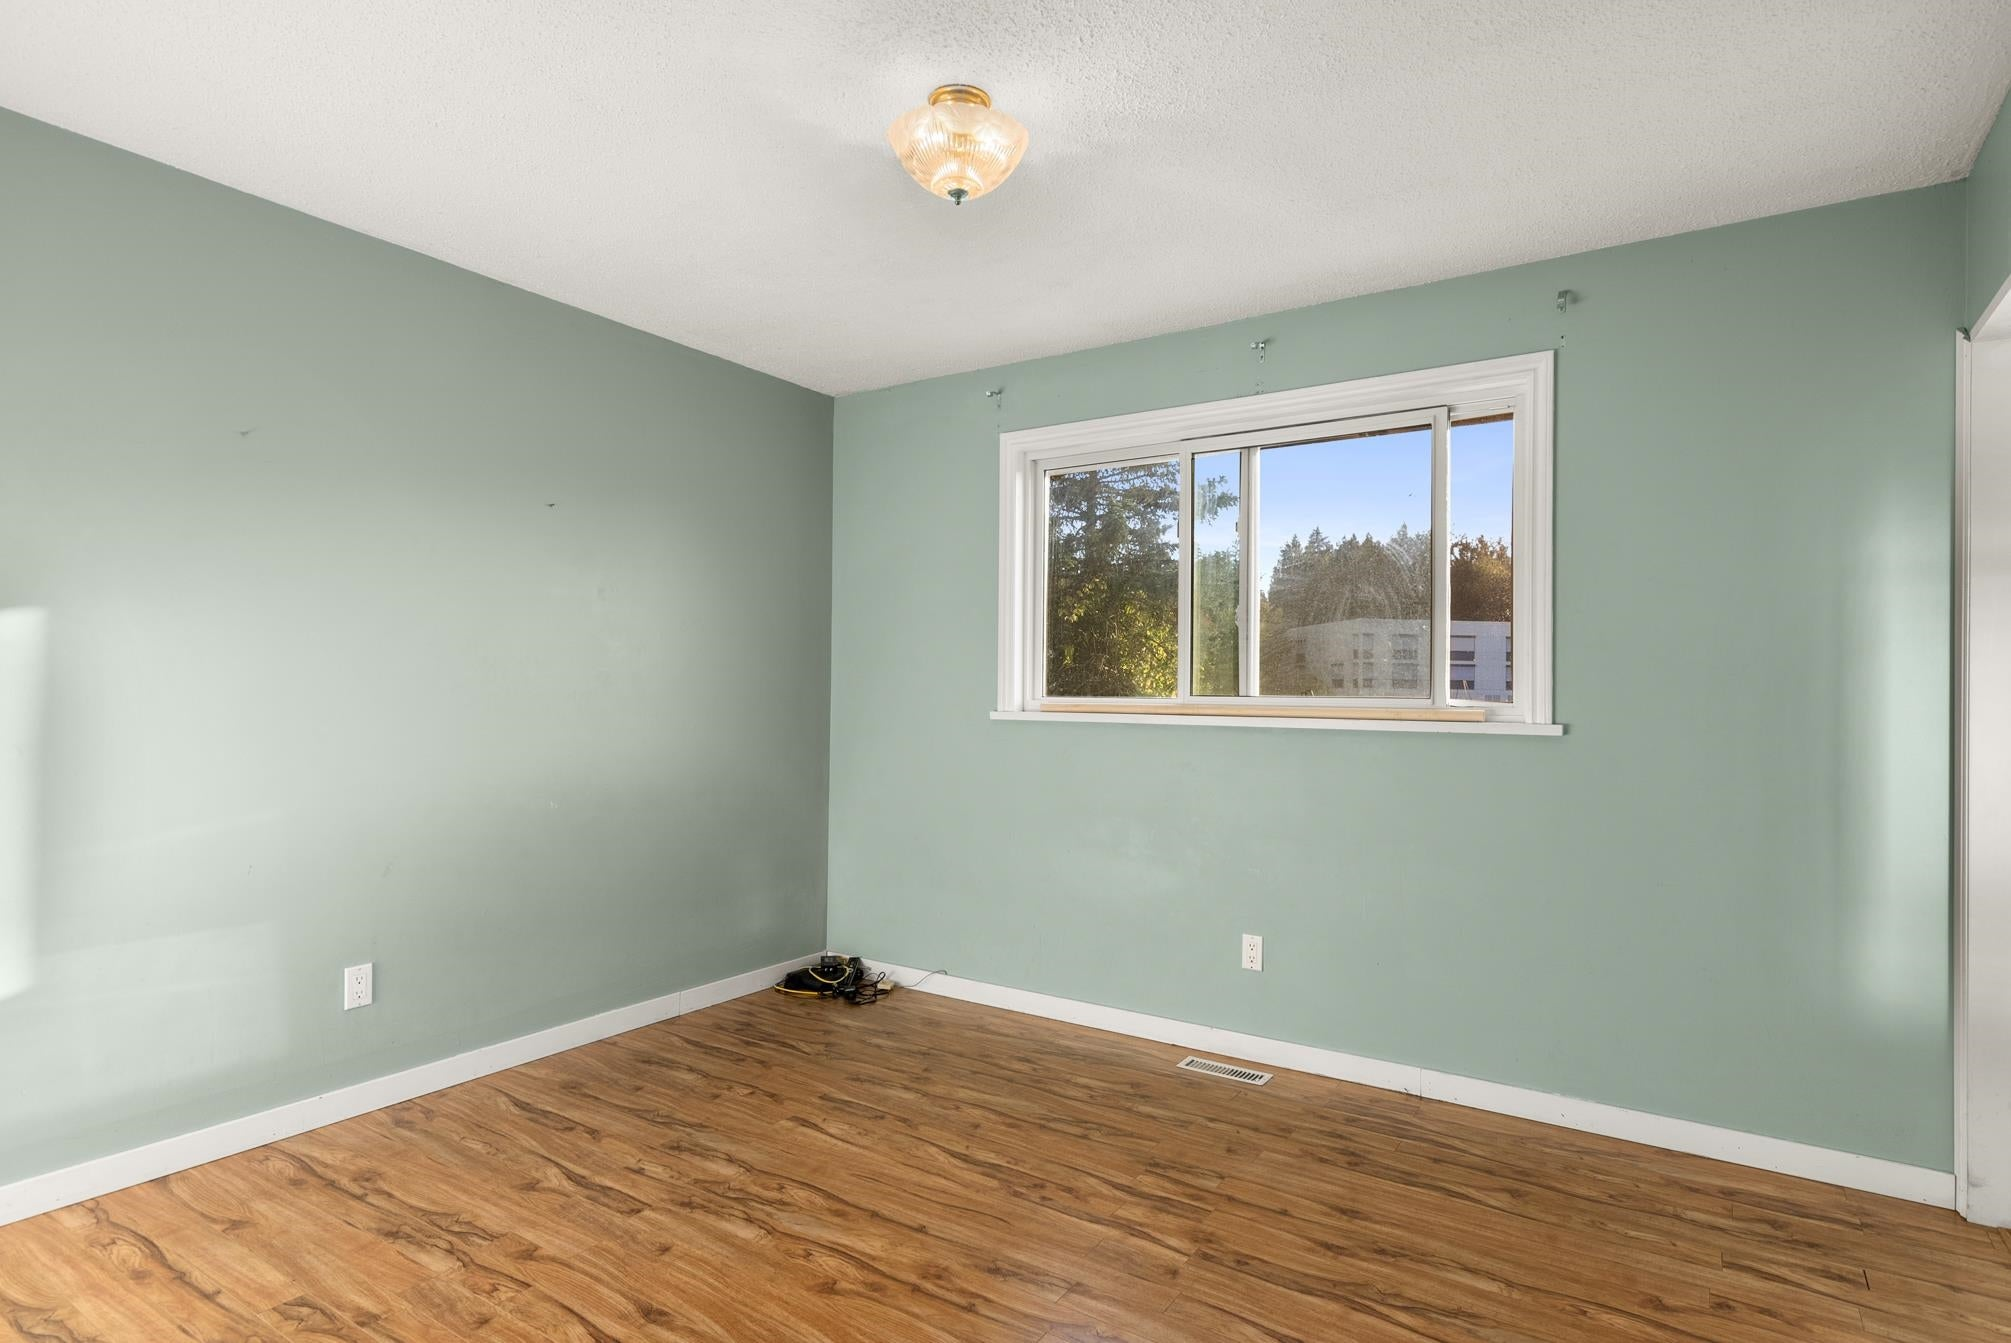 20506 48B AVENUE - Langley City House/Single Family for sale, 4 Bedrooms (R2614937) - #9